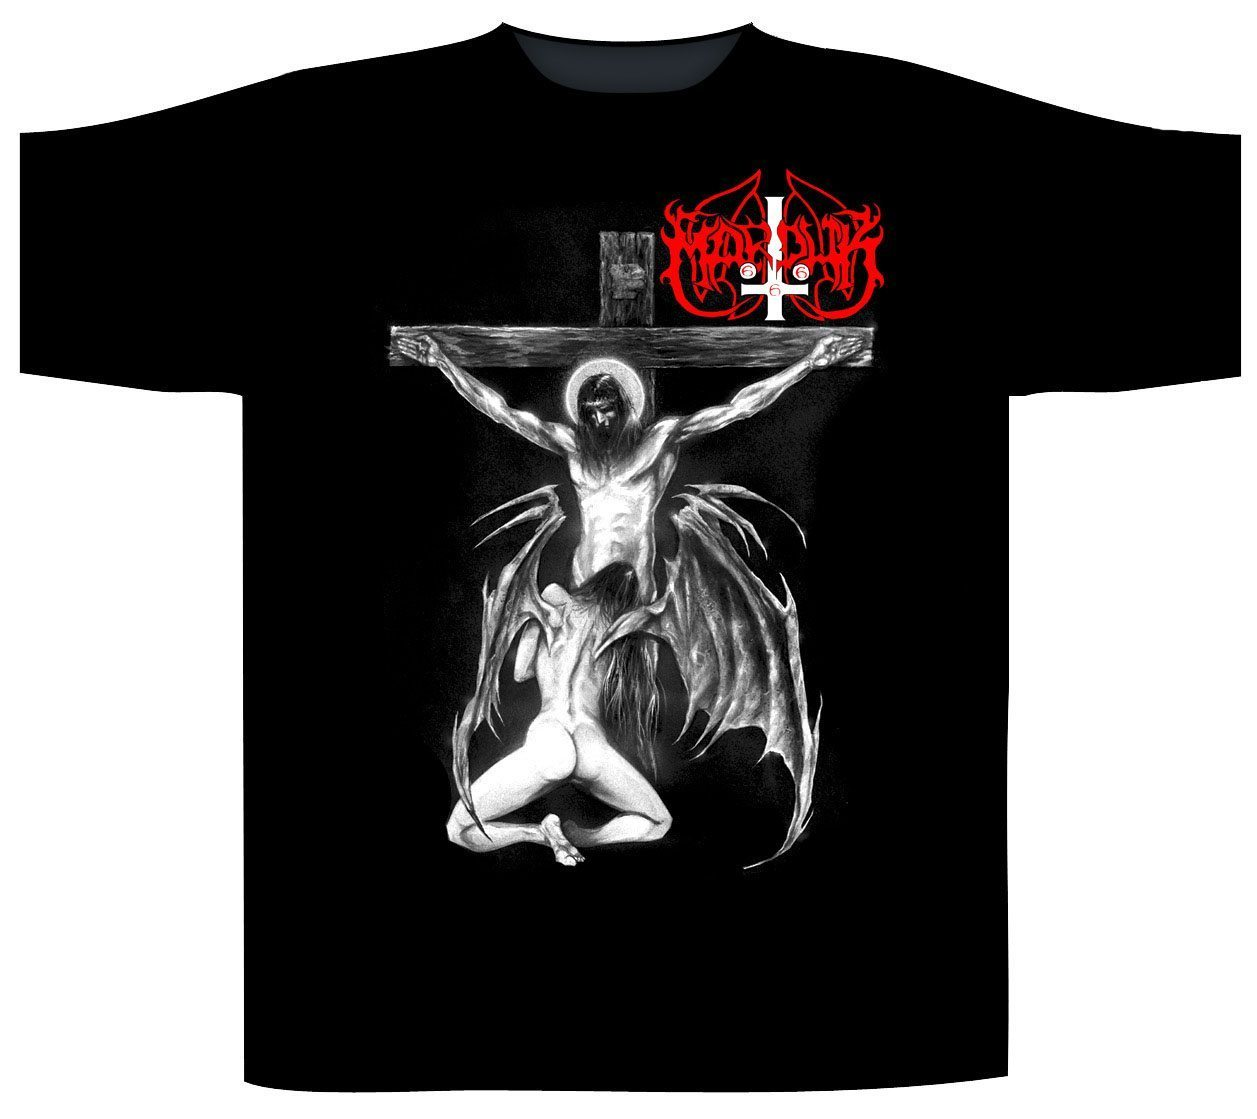 Marduk Shortsleeve T-Shirt Christ Raping Black Metal